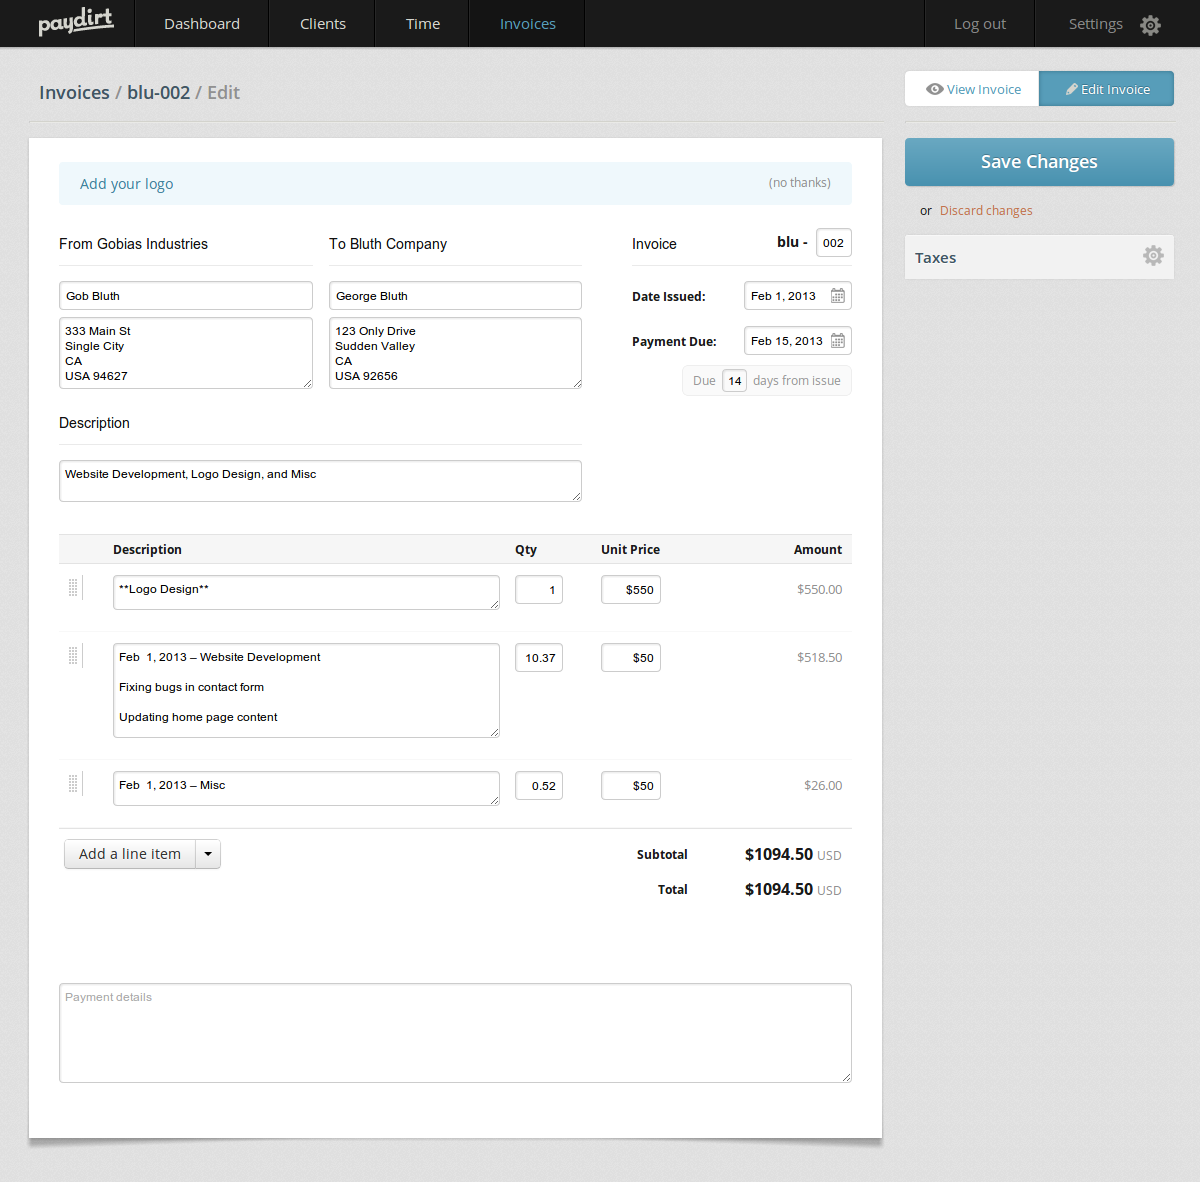 Editing an invoice visually